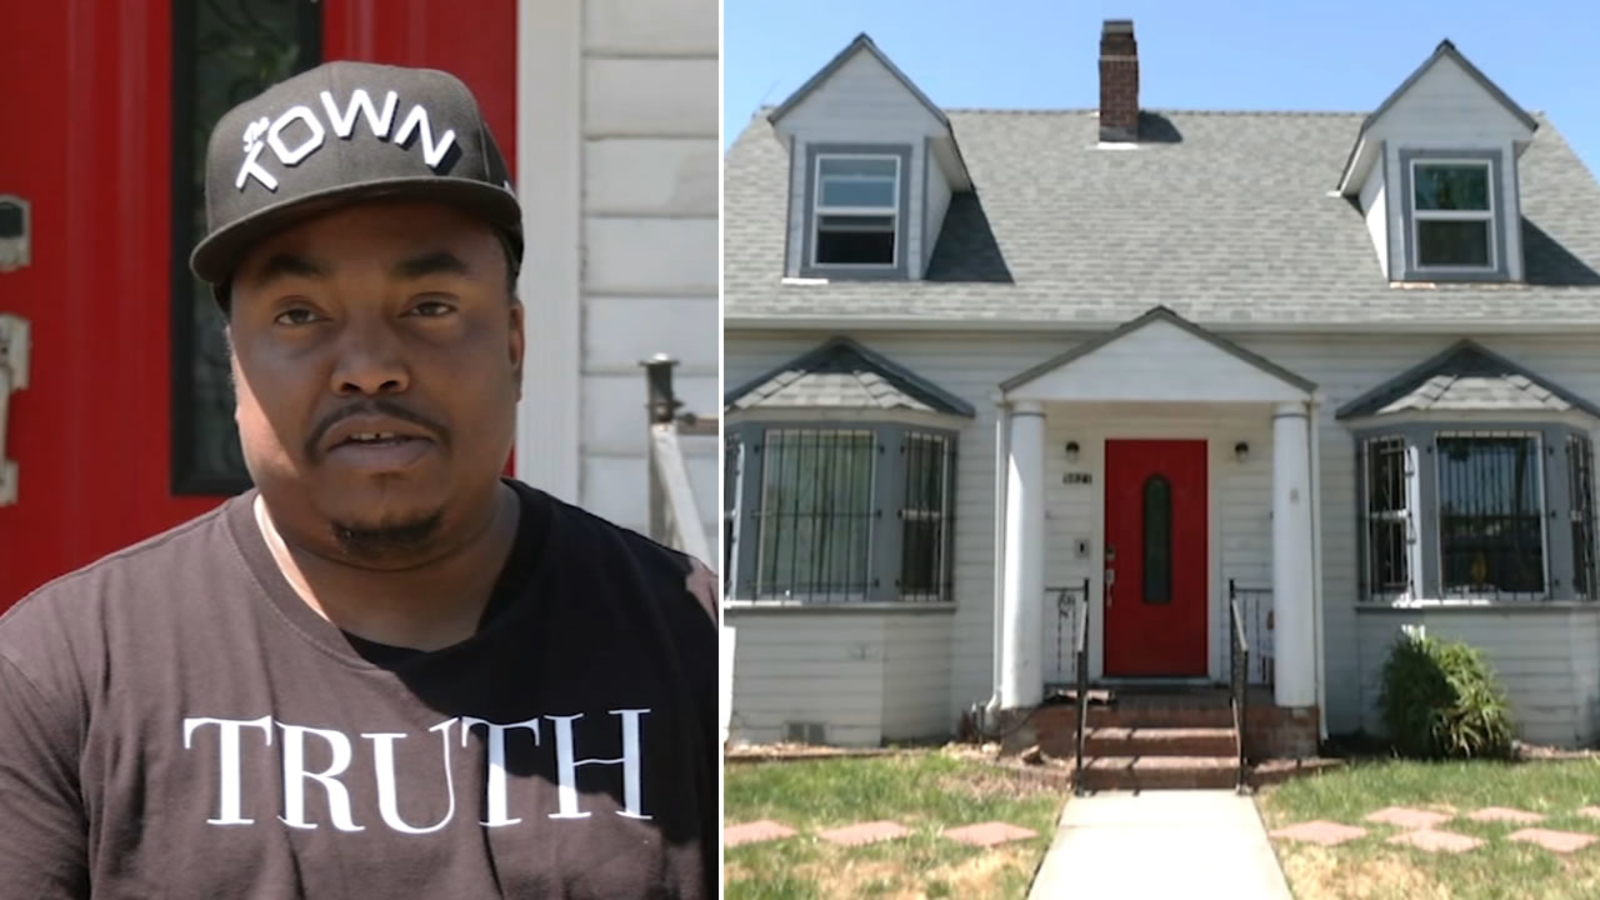 Single father in Oakland fights home appraisal he considered low, new appraisal came in $150K higher